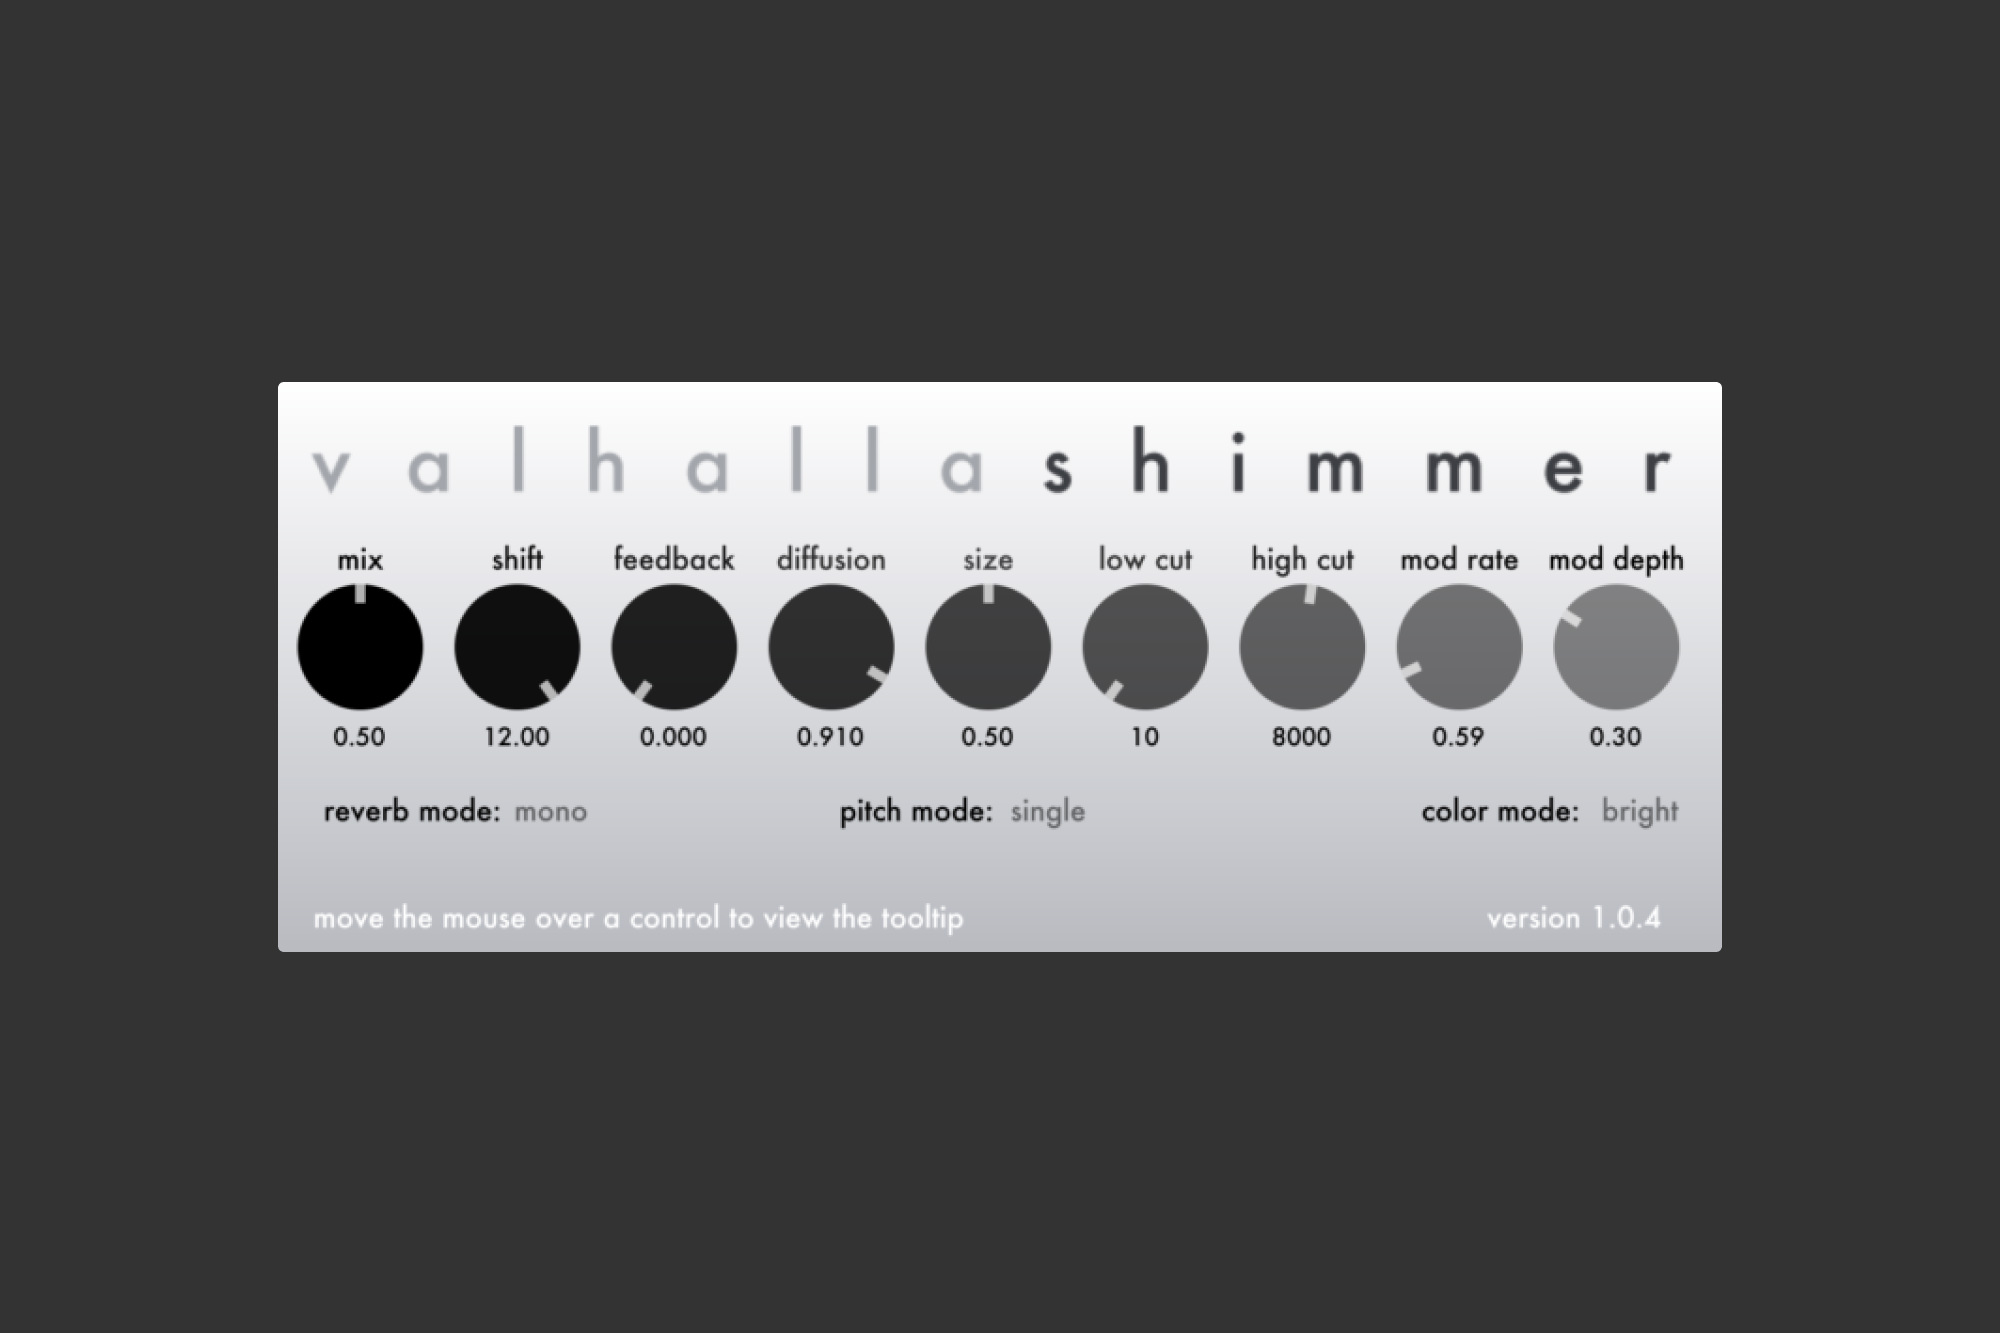 An image of the Valhalla Shimmer.